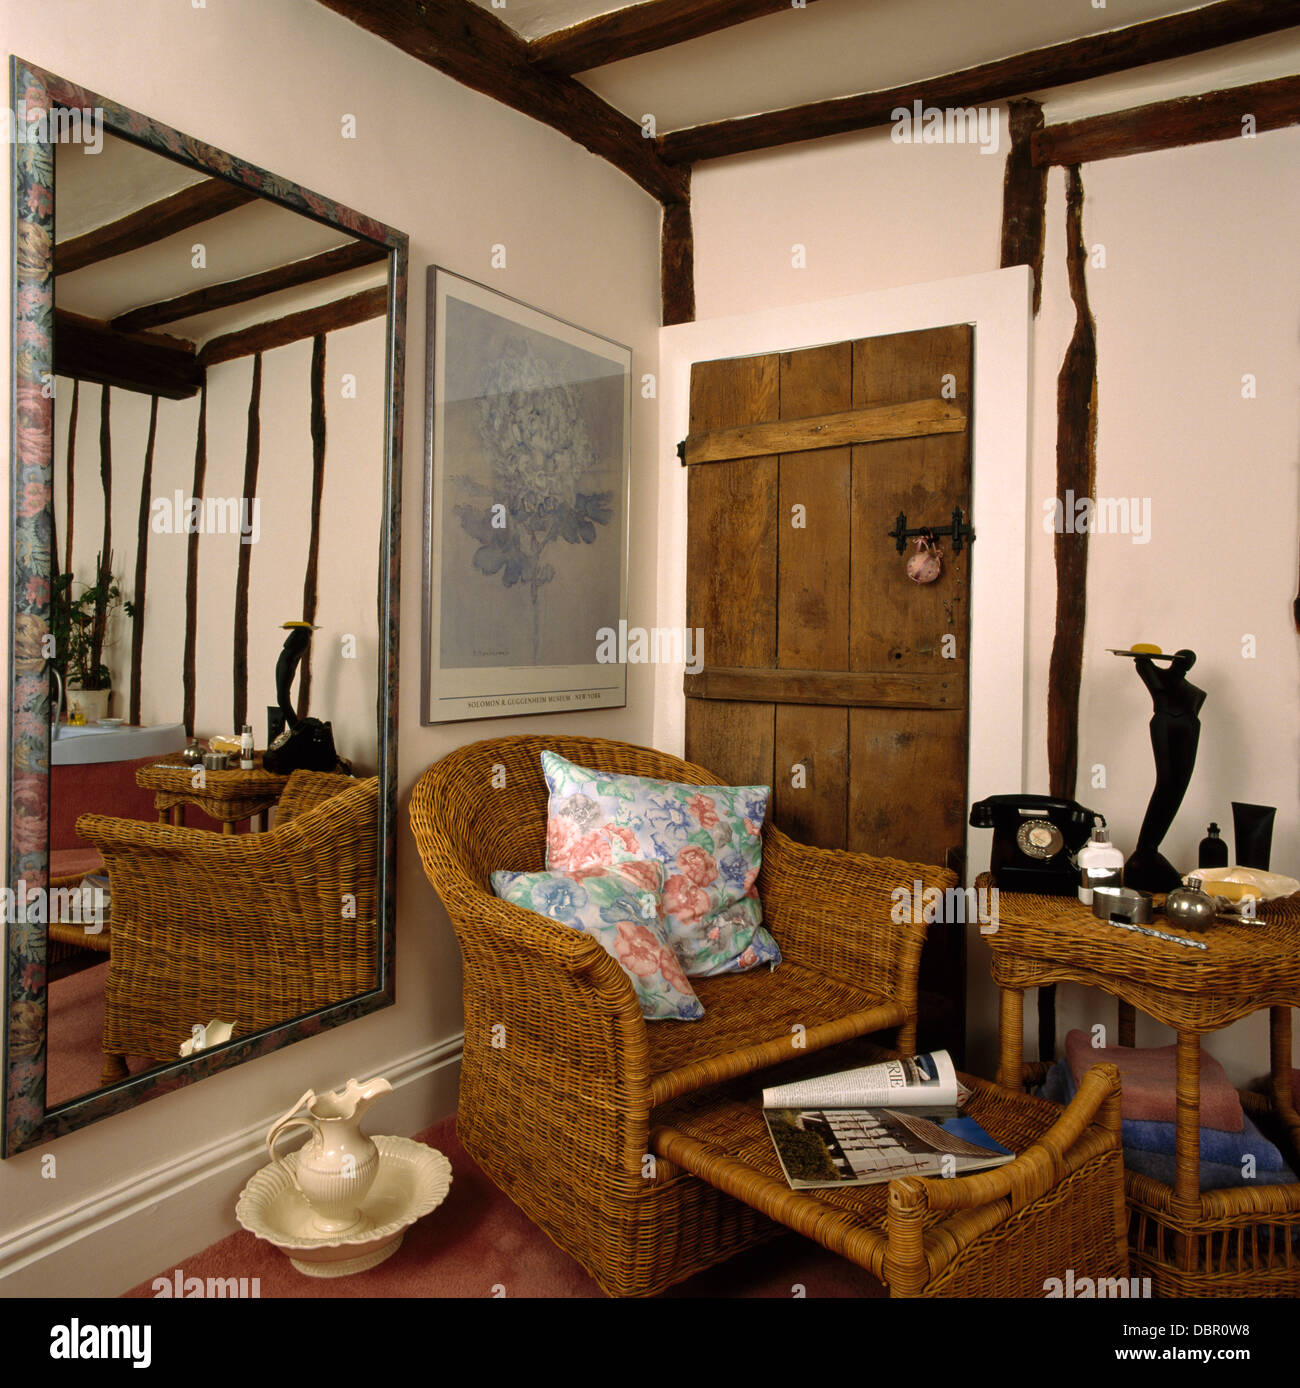 Chaise Longue Telephone Table Large Mirror In Country Living Room With Wicker Chaise Longue And